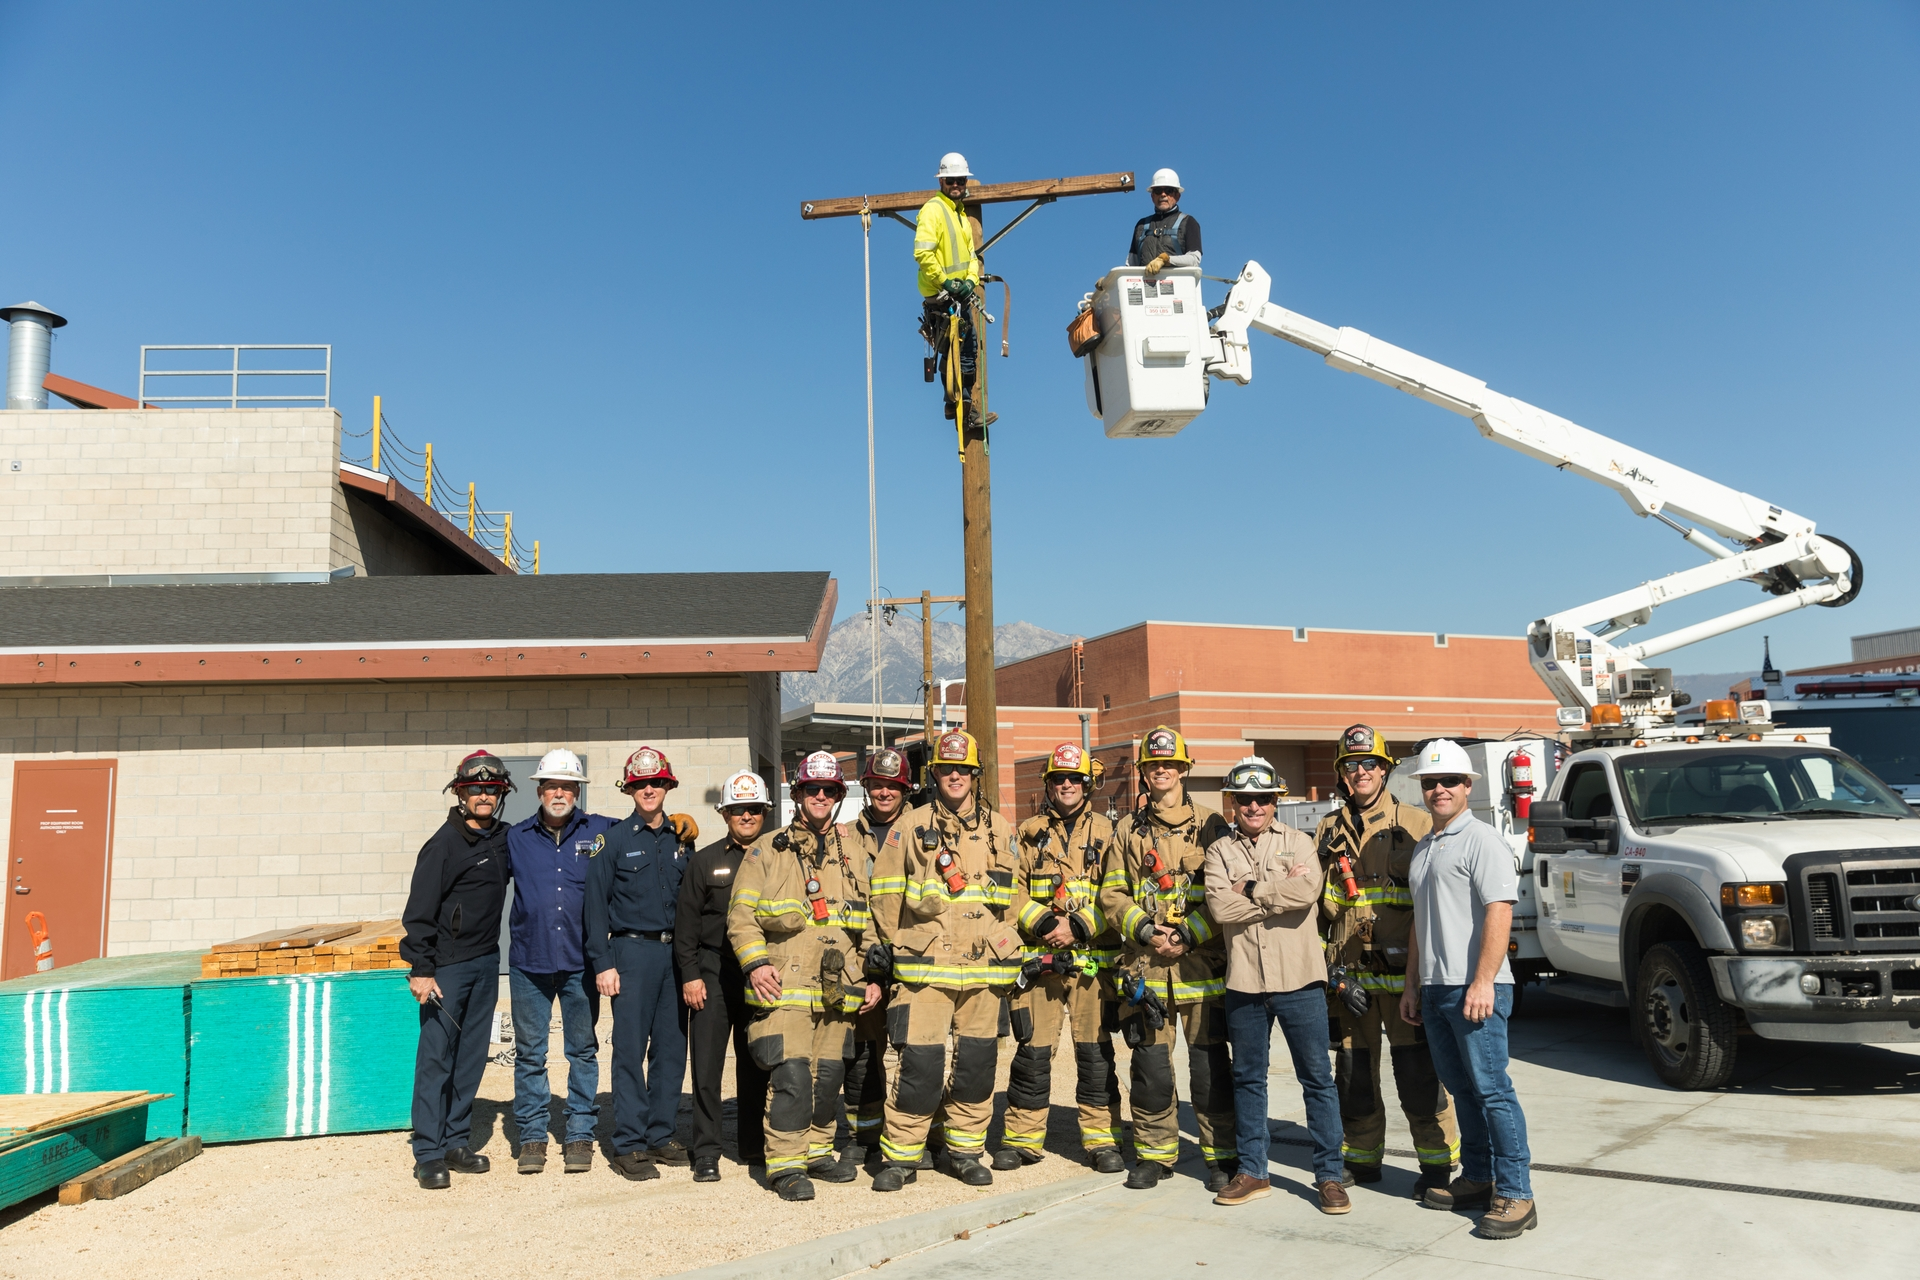 Rancho Cucamonga firefighters with SCE linemen and fire management officers at the All Risk Training Center.